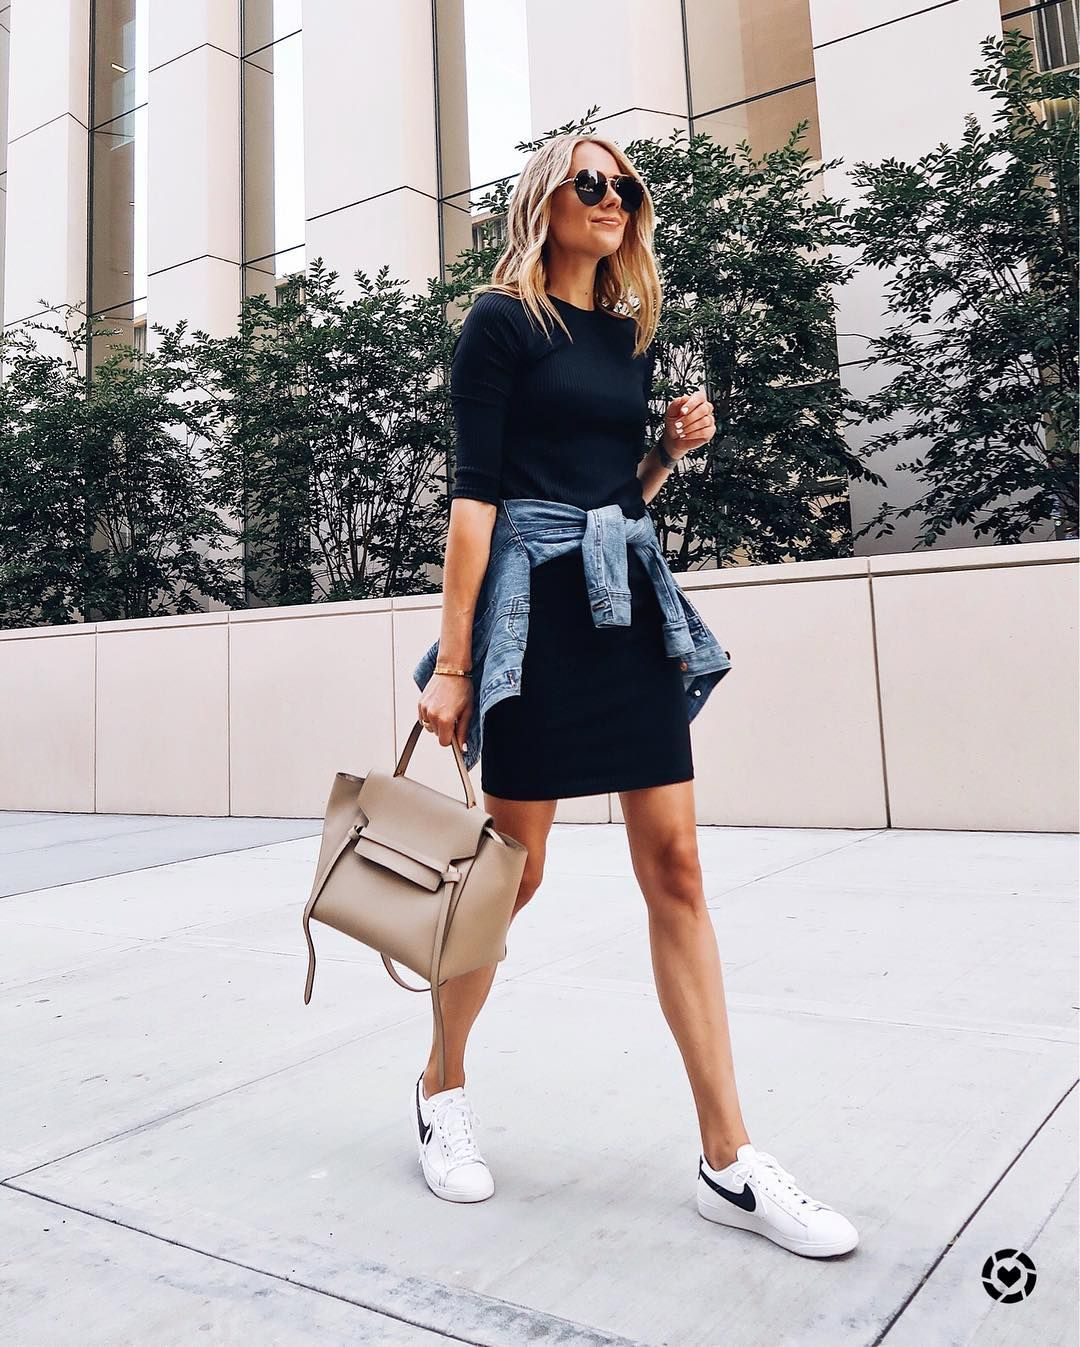 7 Chic Ways To Style Sneakers The Everygirl Dress And Sneakers Outfit Fashion Jackson Fashion [ 1347 x 1080 Pixel ]